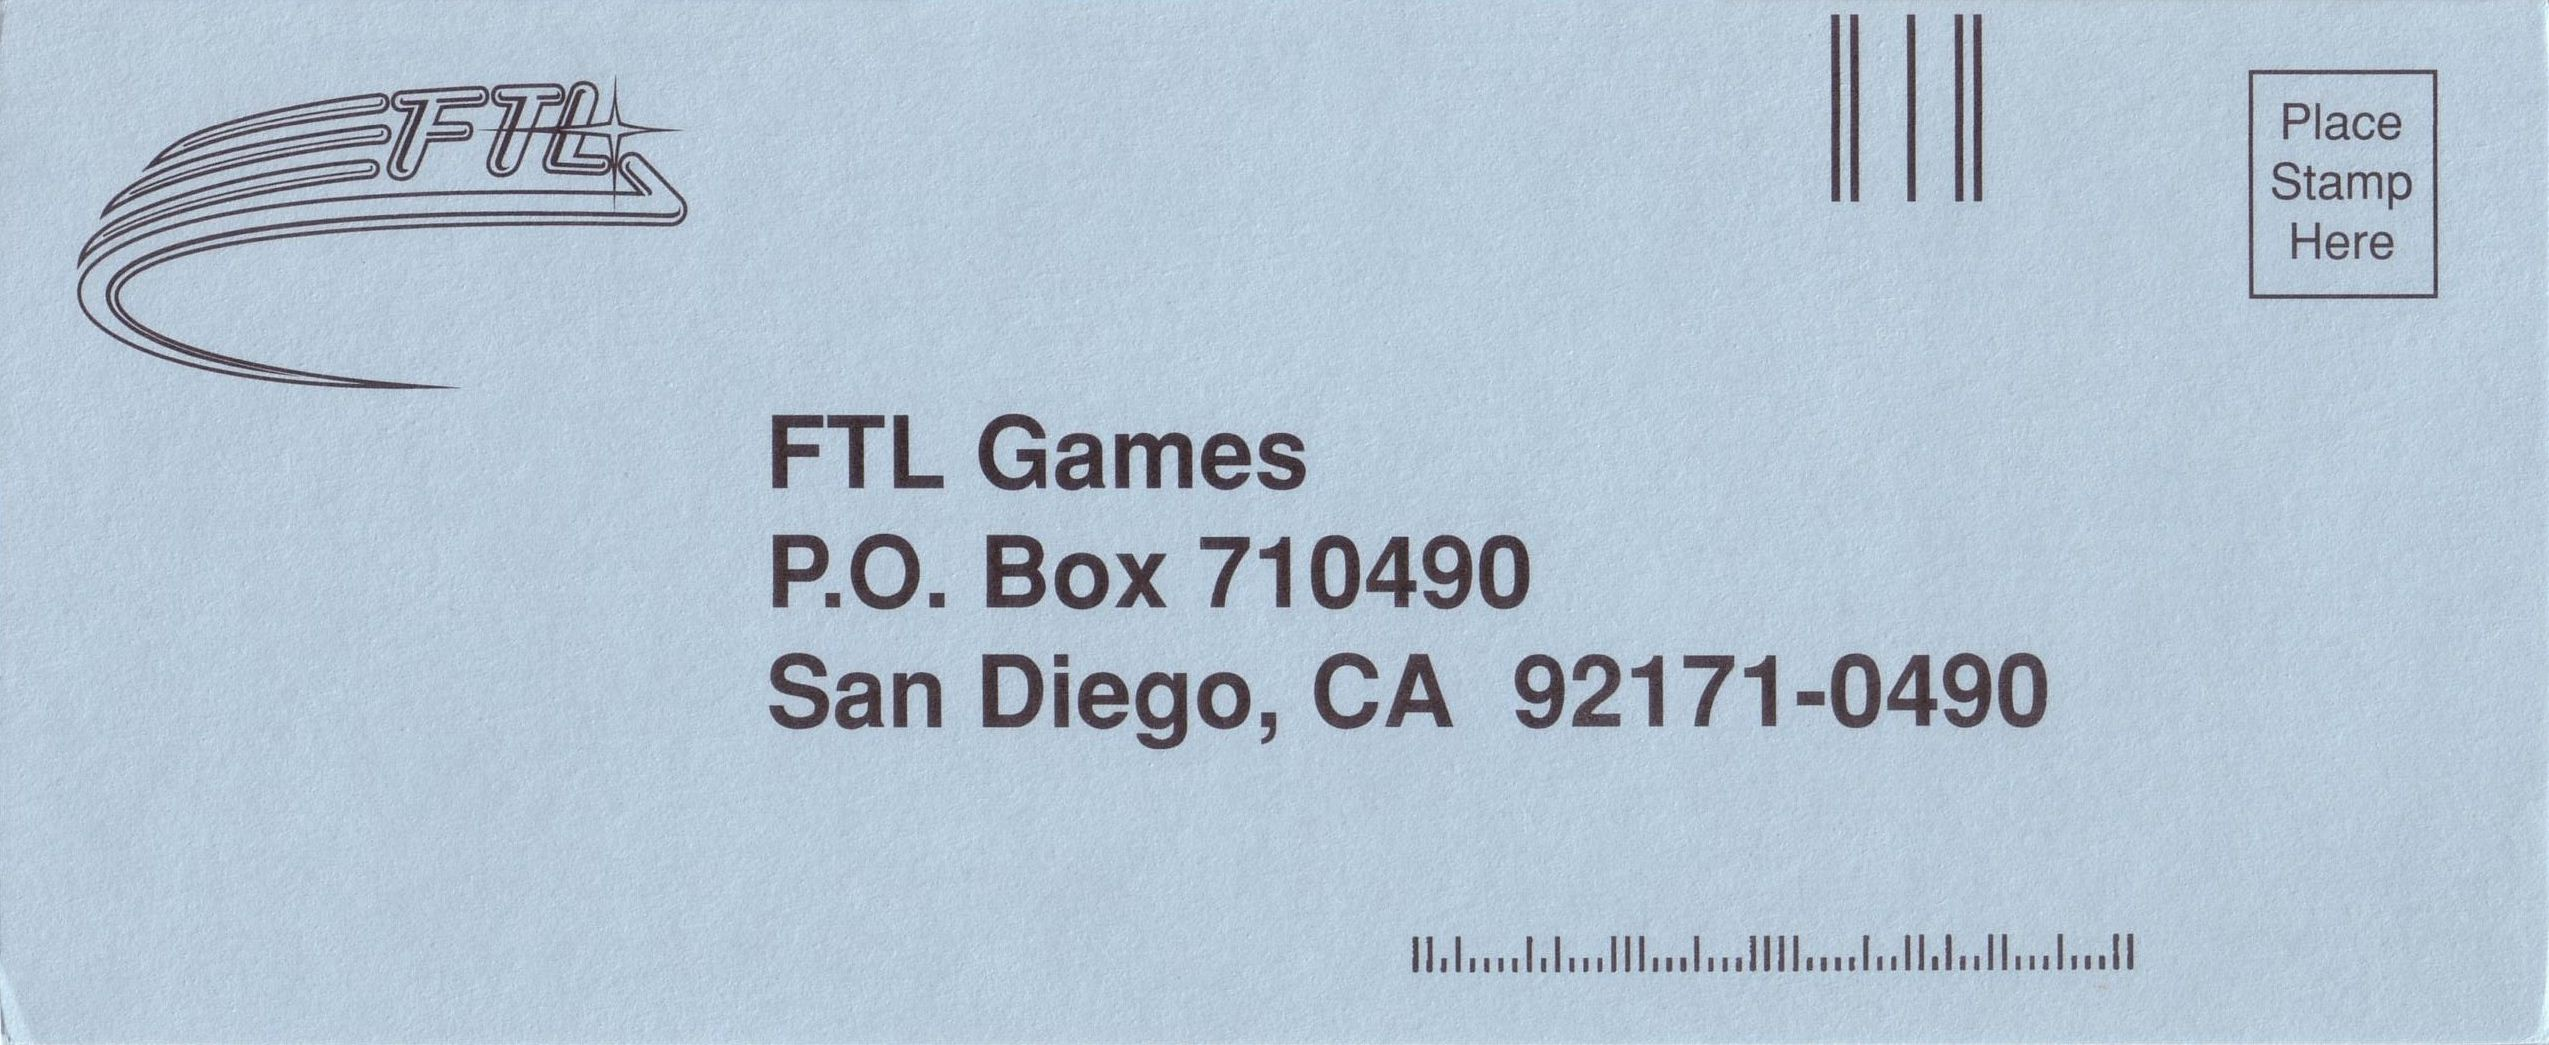 Dungeon Master for PC with FTL Sound Adapter (US Release) - Registration Card Front